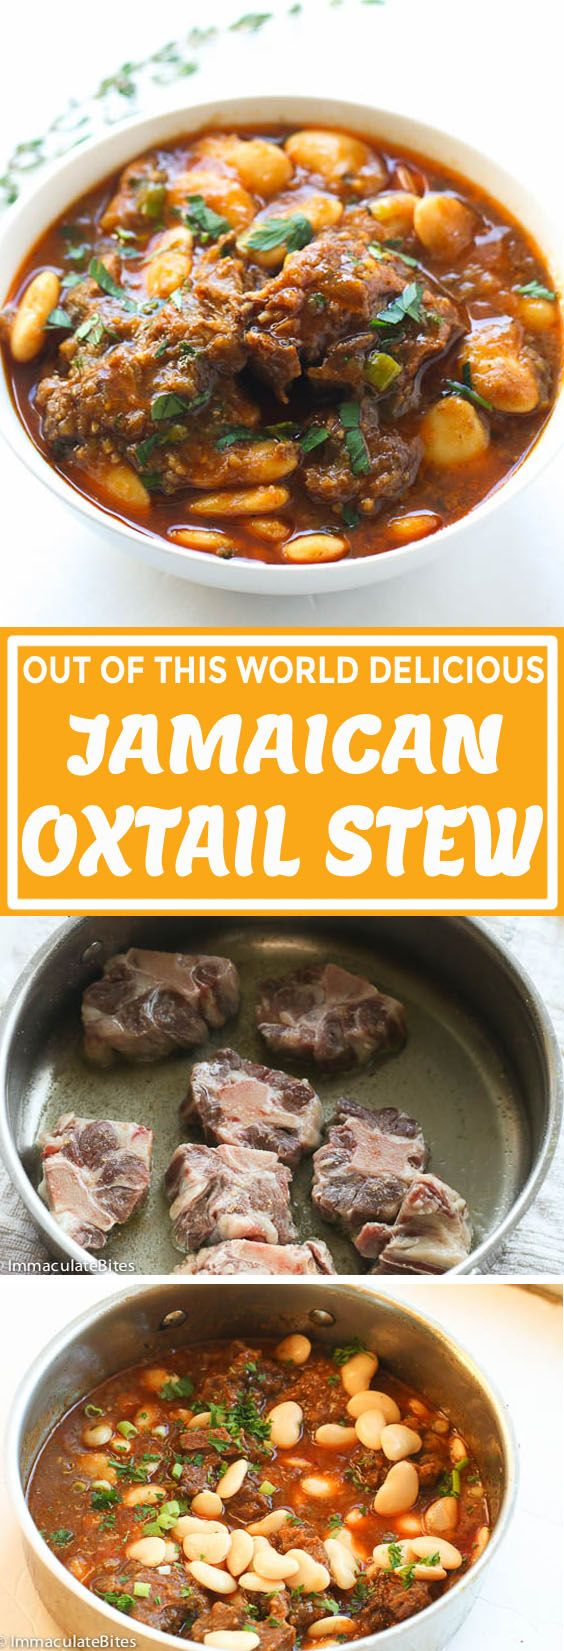 Jamaican Oxtail Stew - Immaculate Bites